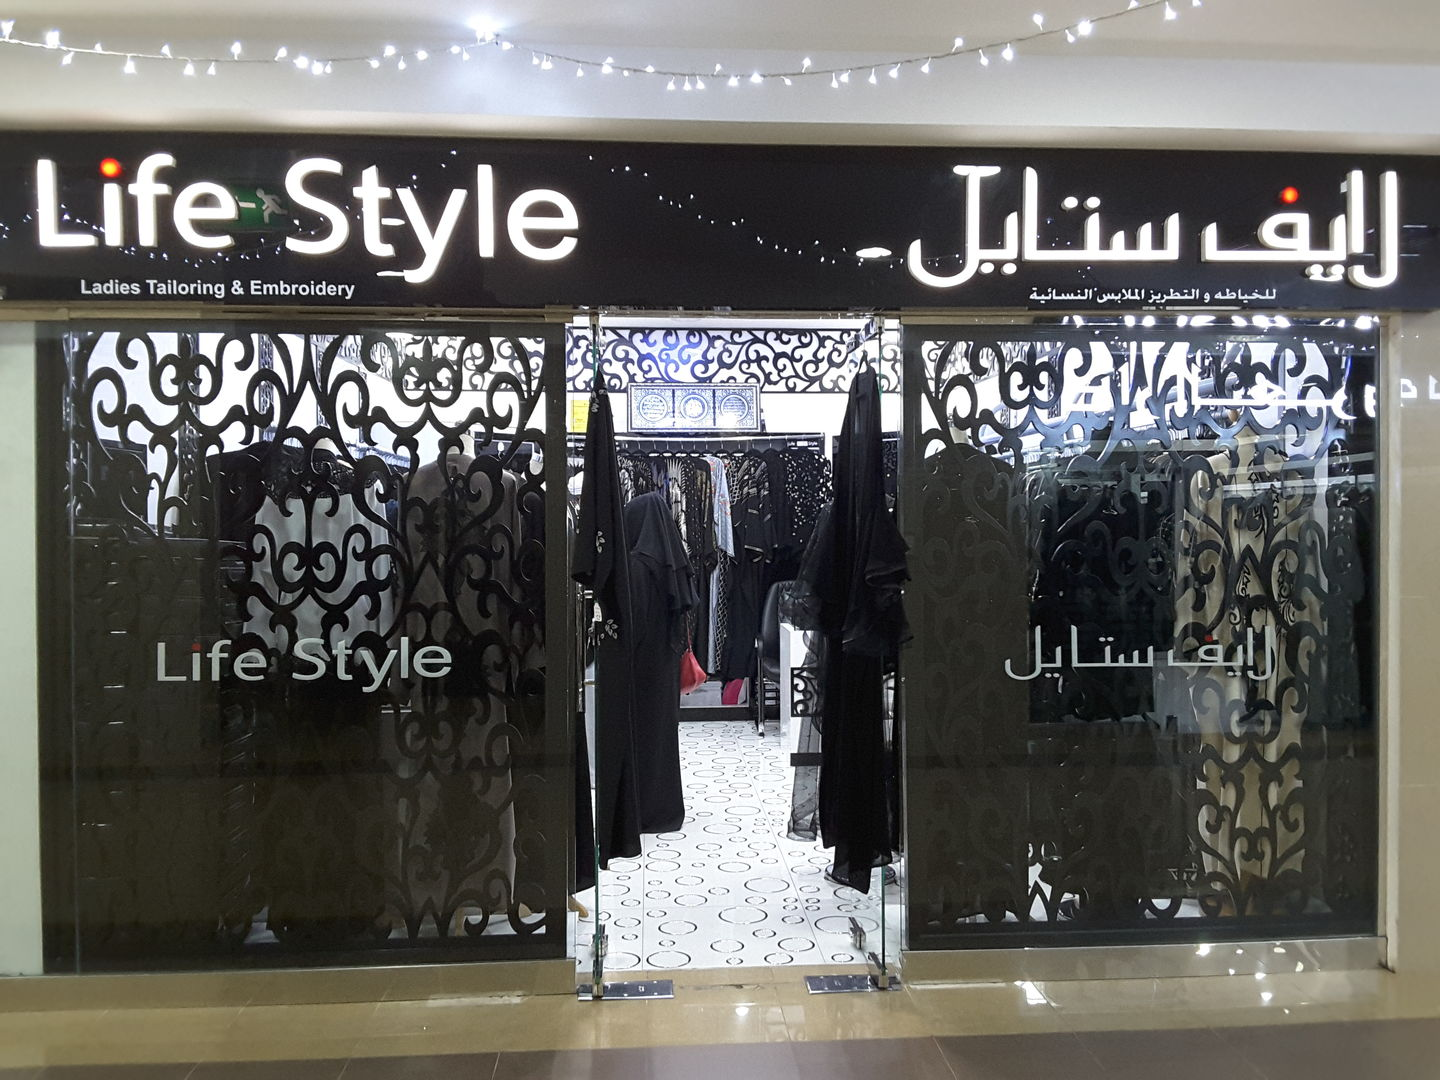 HiDubai-business-life-style-ladies-tailoring-embroidery-shopping-apparel-mirdif-dubai-2